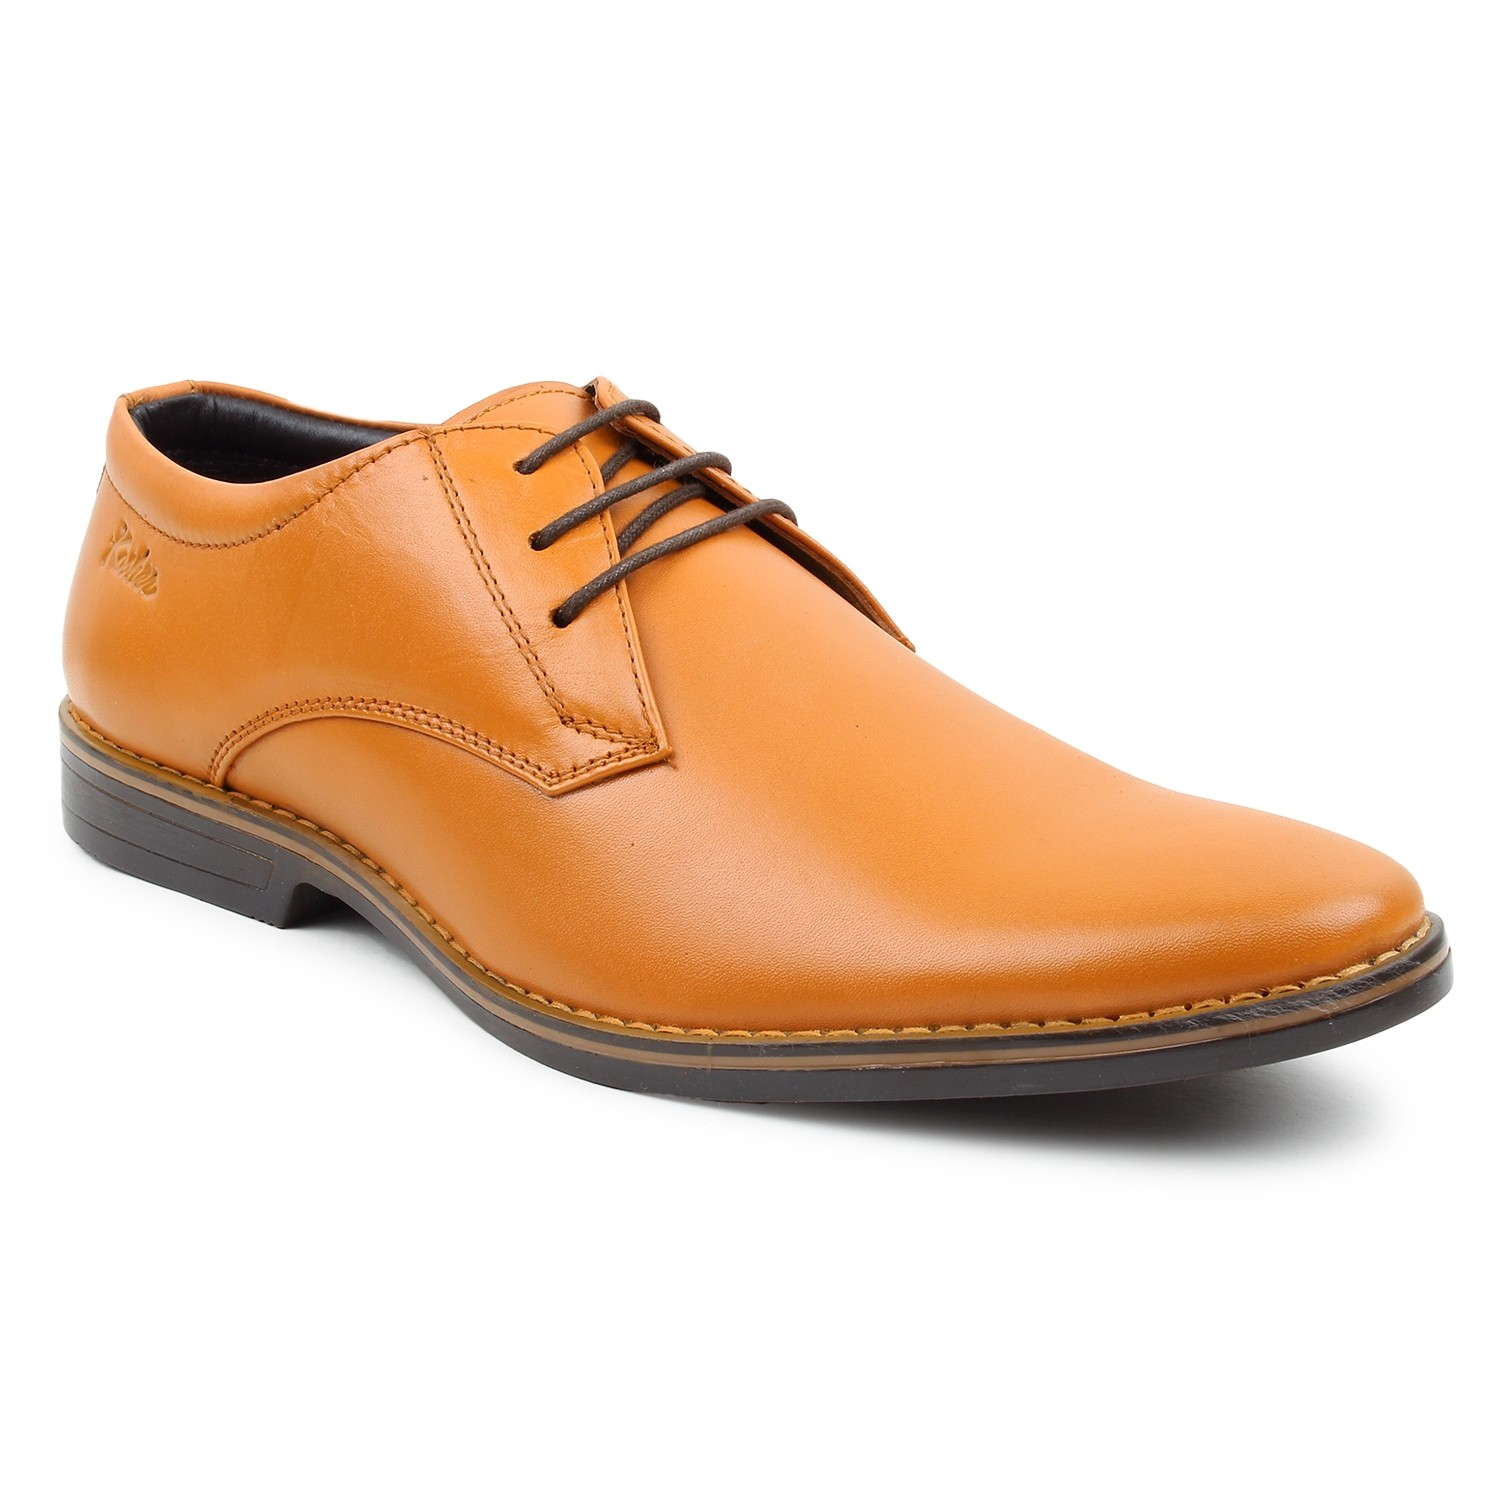 Leather Shoes Tan